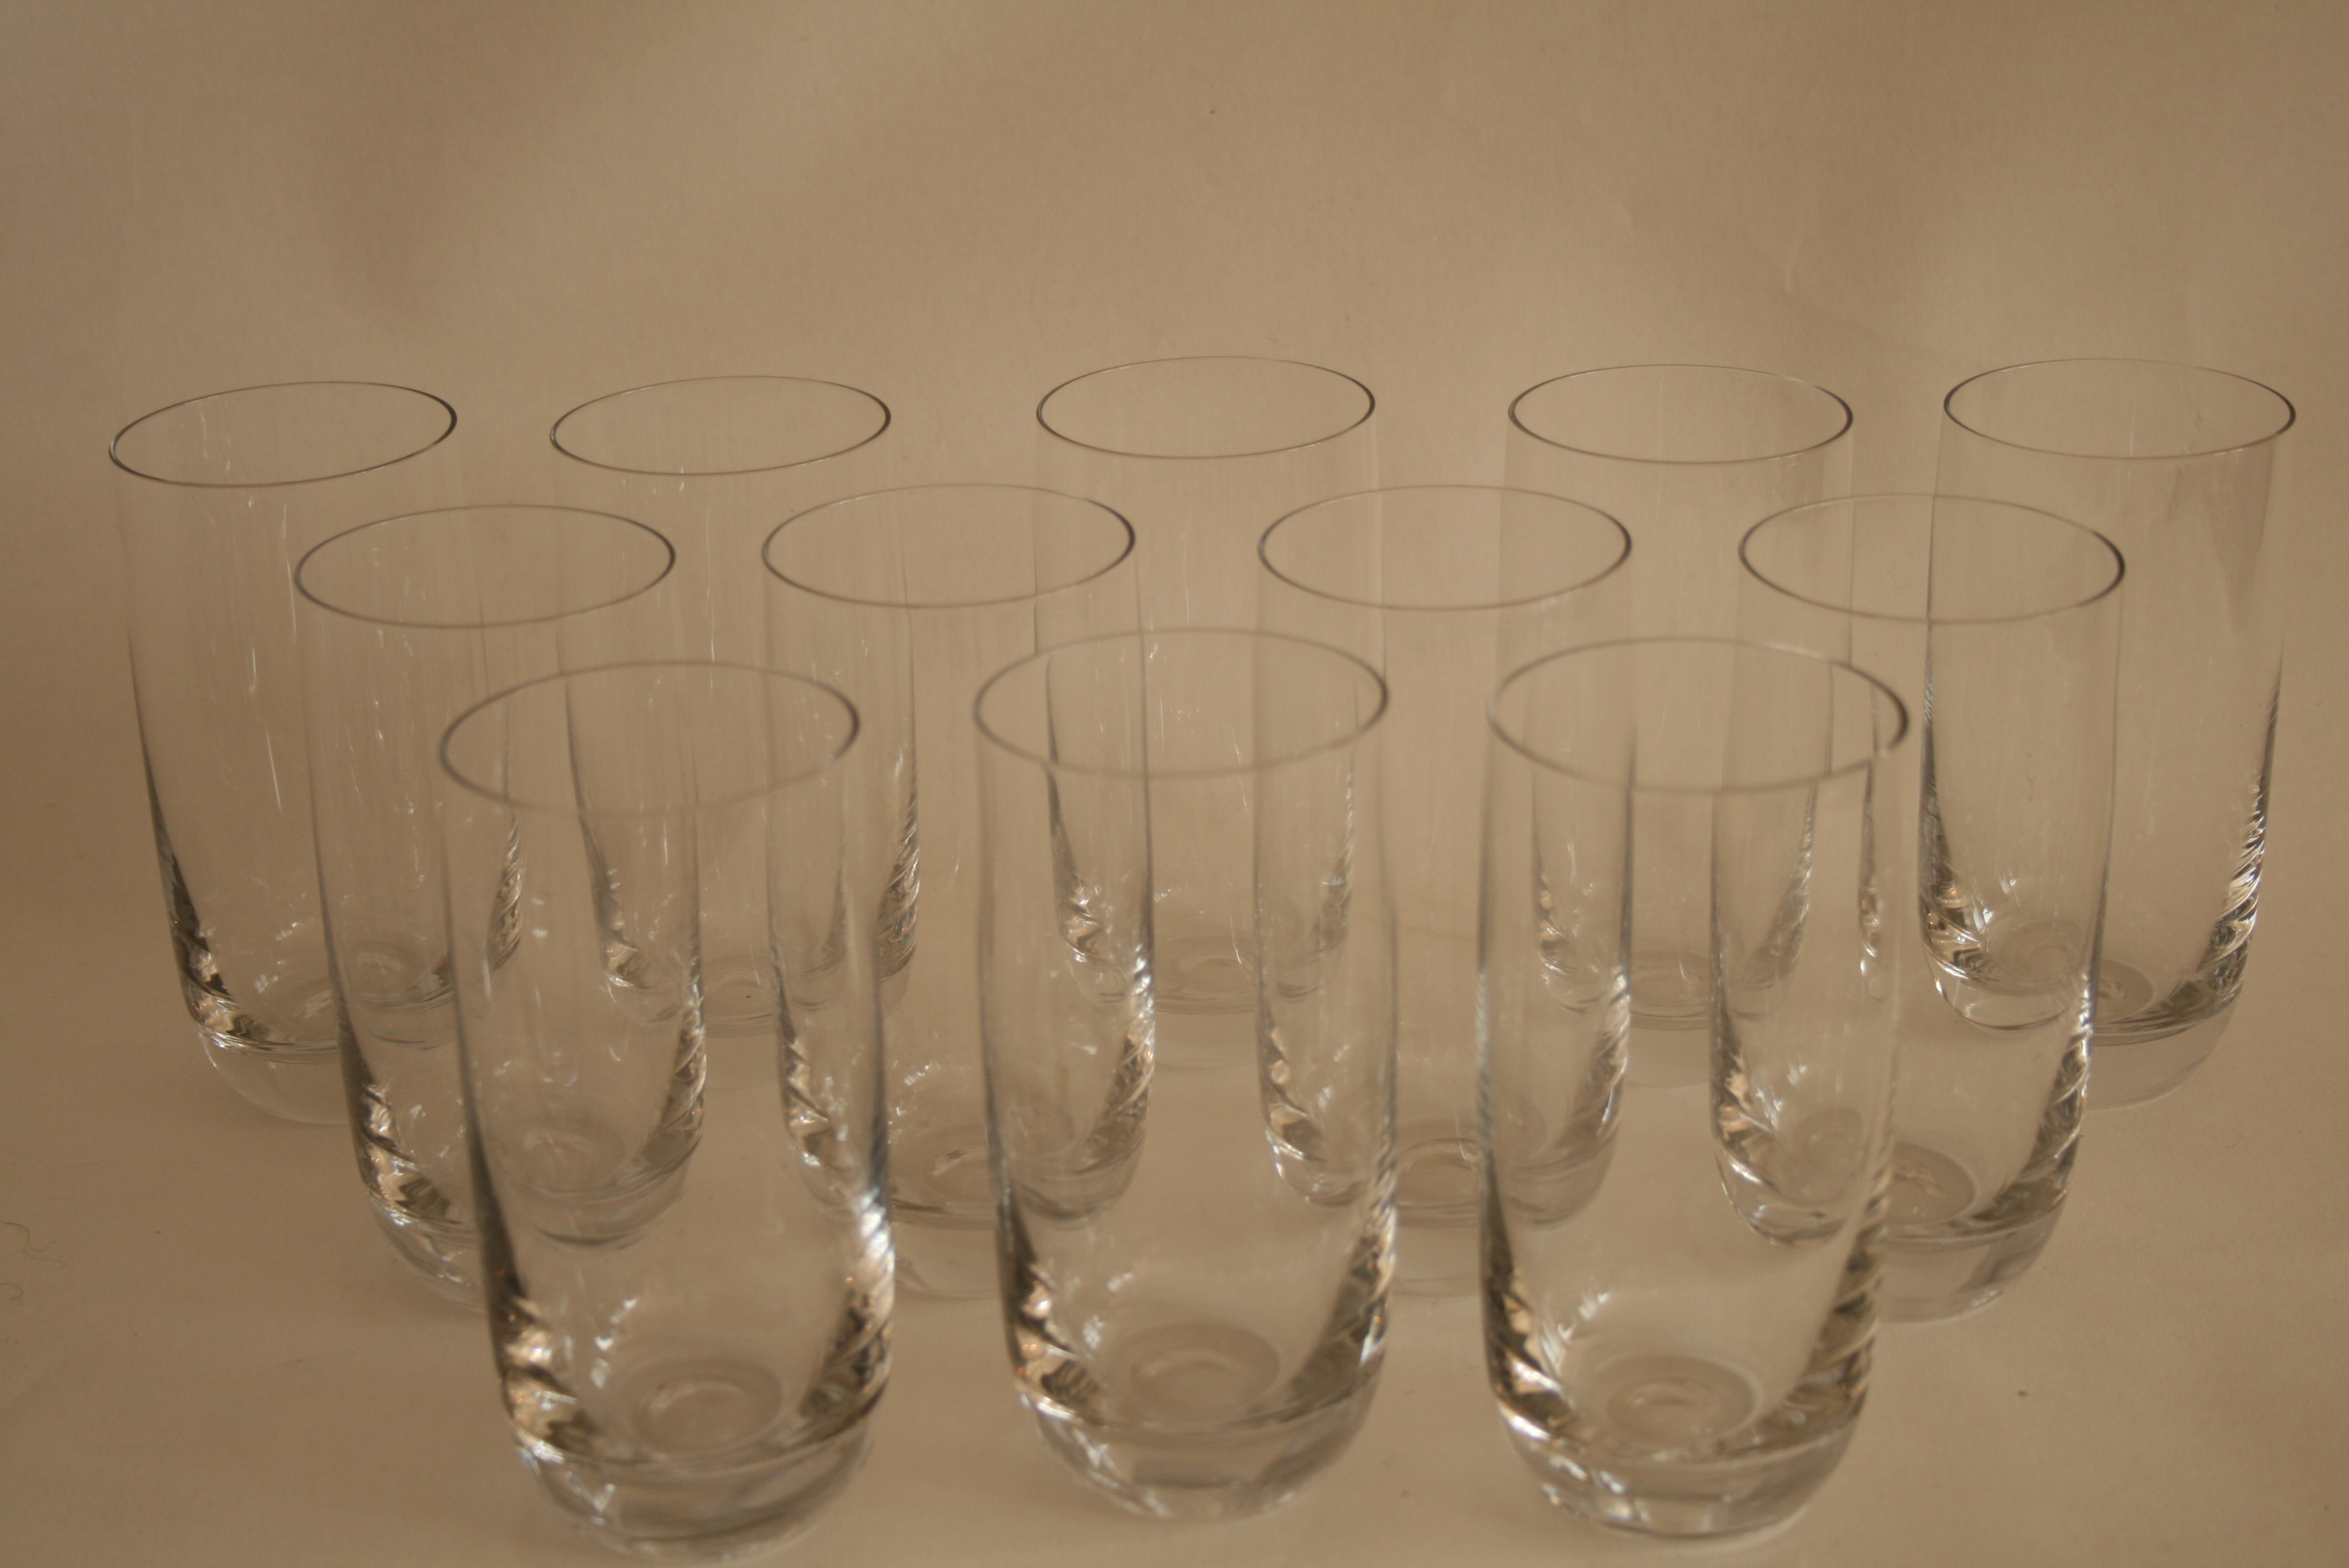 Lot 52 - Ensemble de 12 verres à eau en cristal (14,5 cm) - Set of 12 crystal water glasses [...]